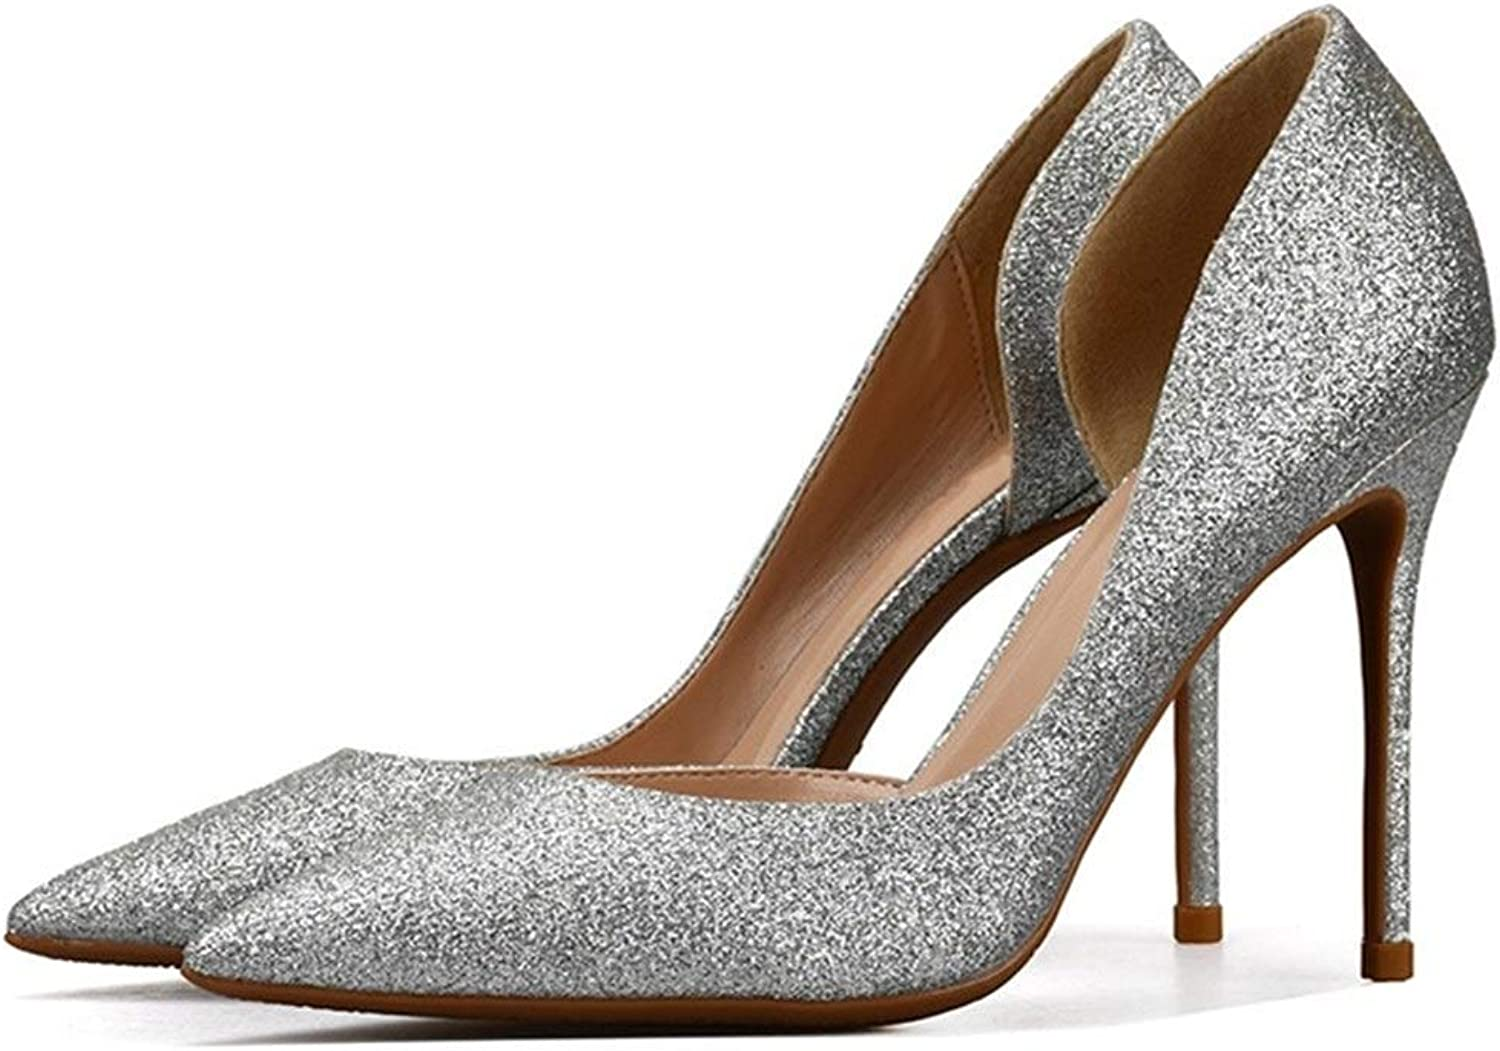 ZerenQ D'Orsay Pumps for Women High Stiletto Heels Glitter Pointed Sandasl for Ladies Side Cut Durable (color   Silver 8 cm Heel, Size   8.5 M US)